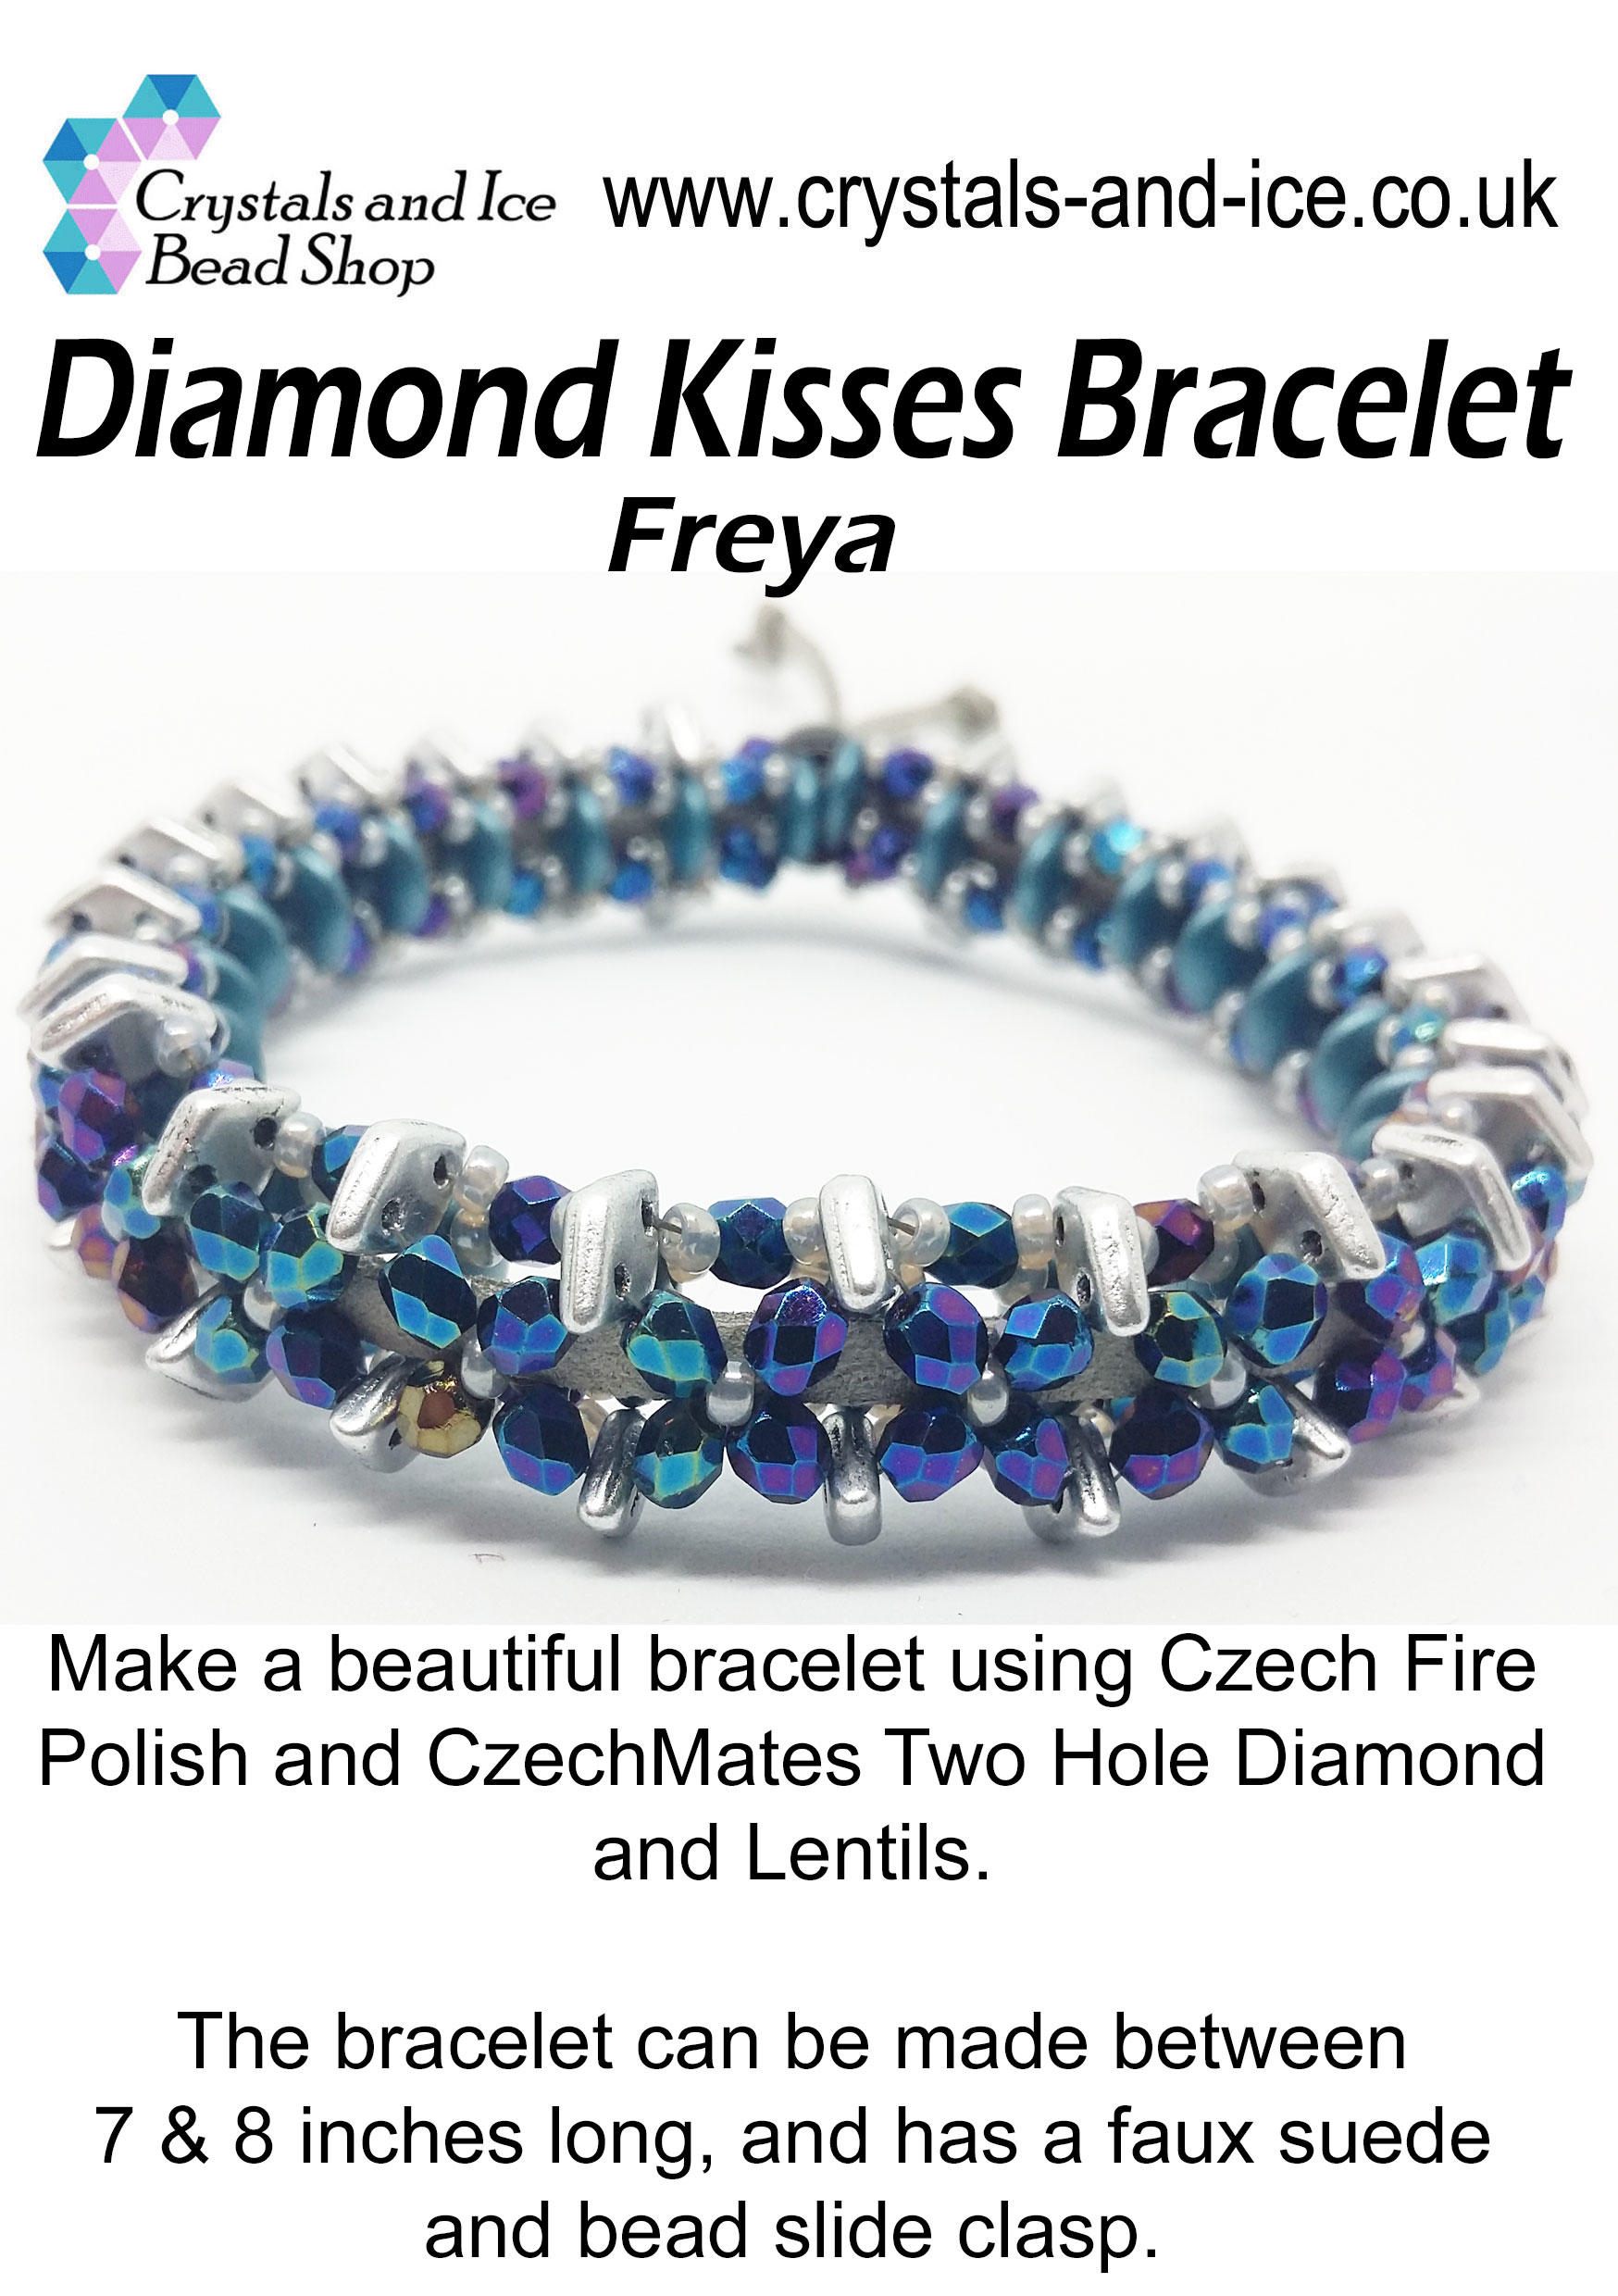 Diamond Kisses Bracelet Kit - Freya